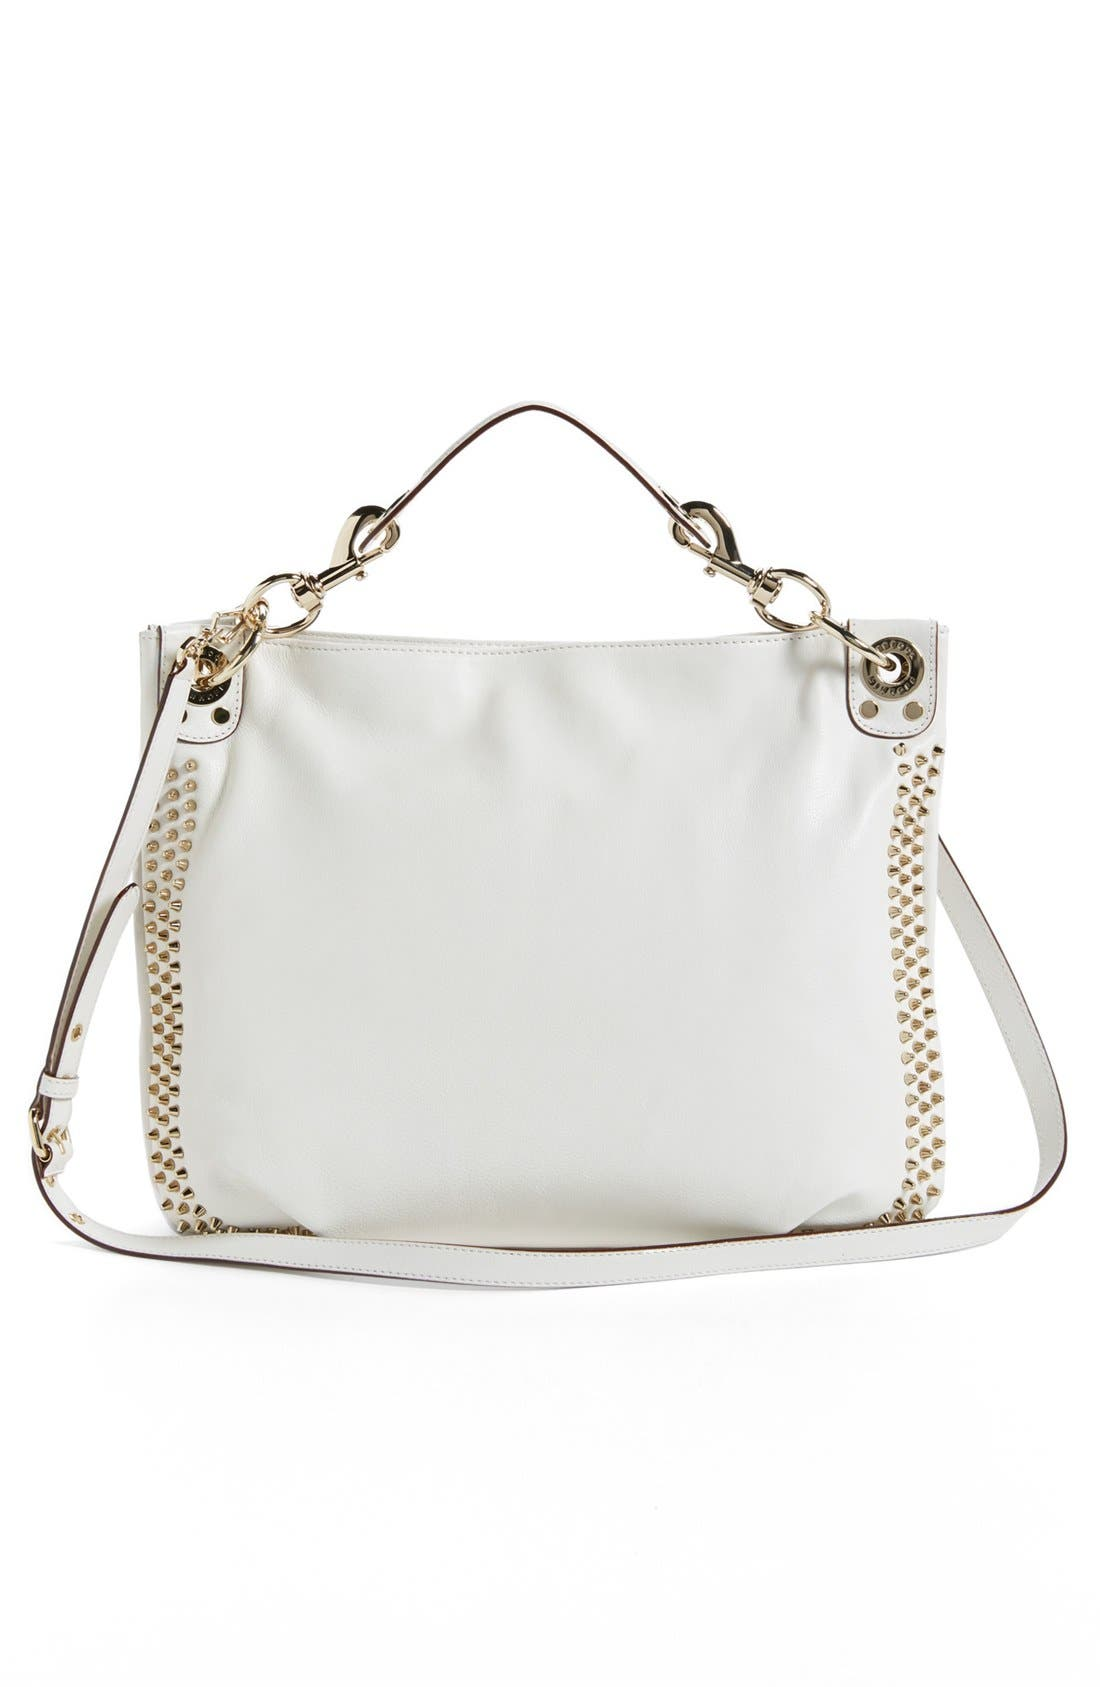 Alternate Image 1 Selected - Rebecca Minkoff 'Luscious' Hobo